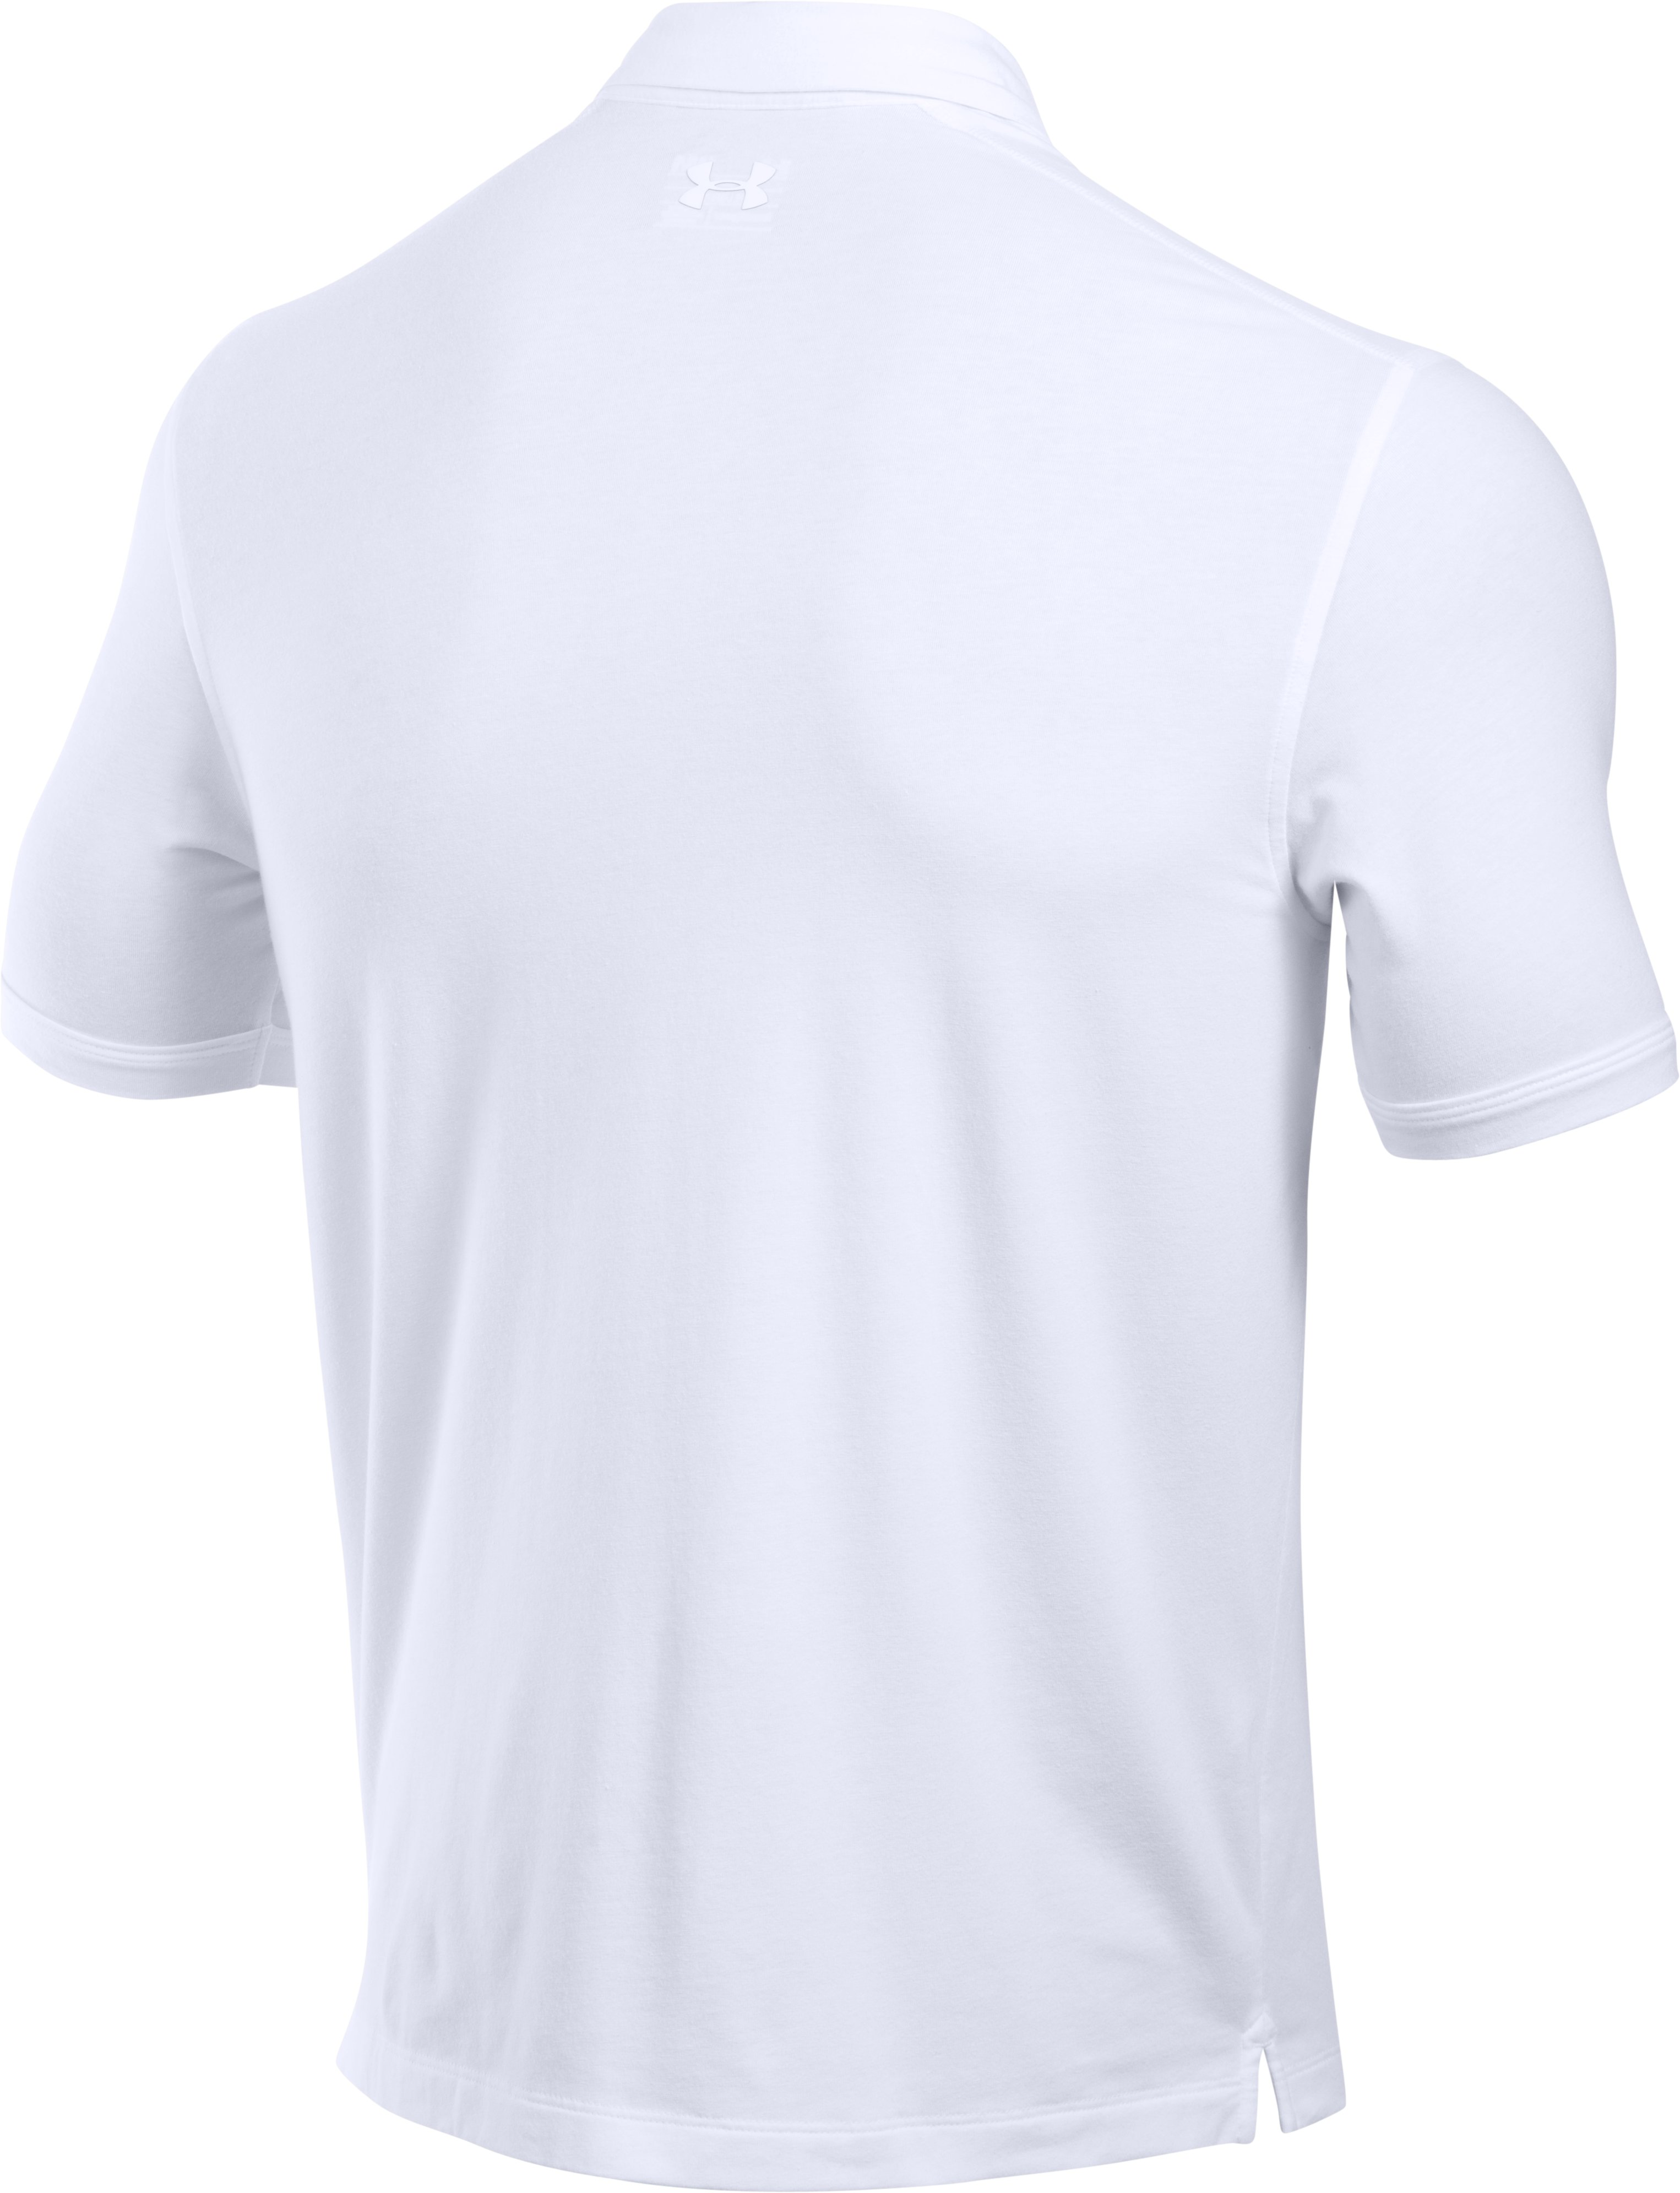 Men's Charged Cotton® Scramble Polo, White, undefined